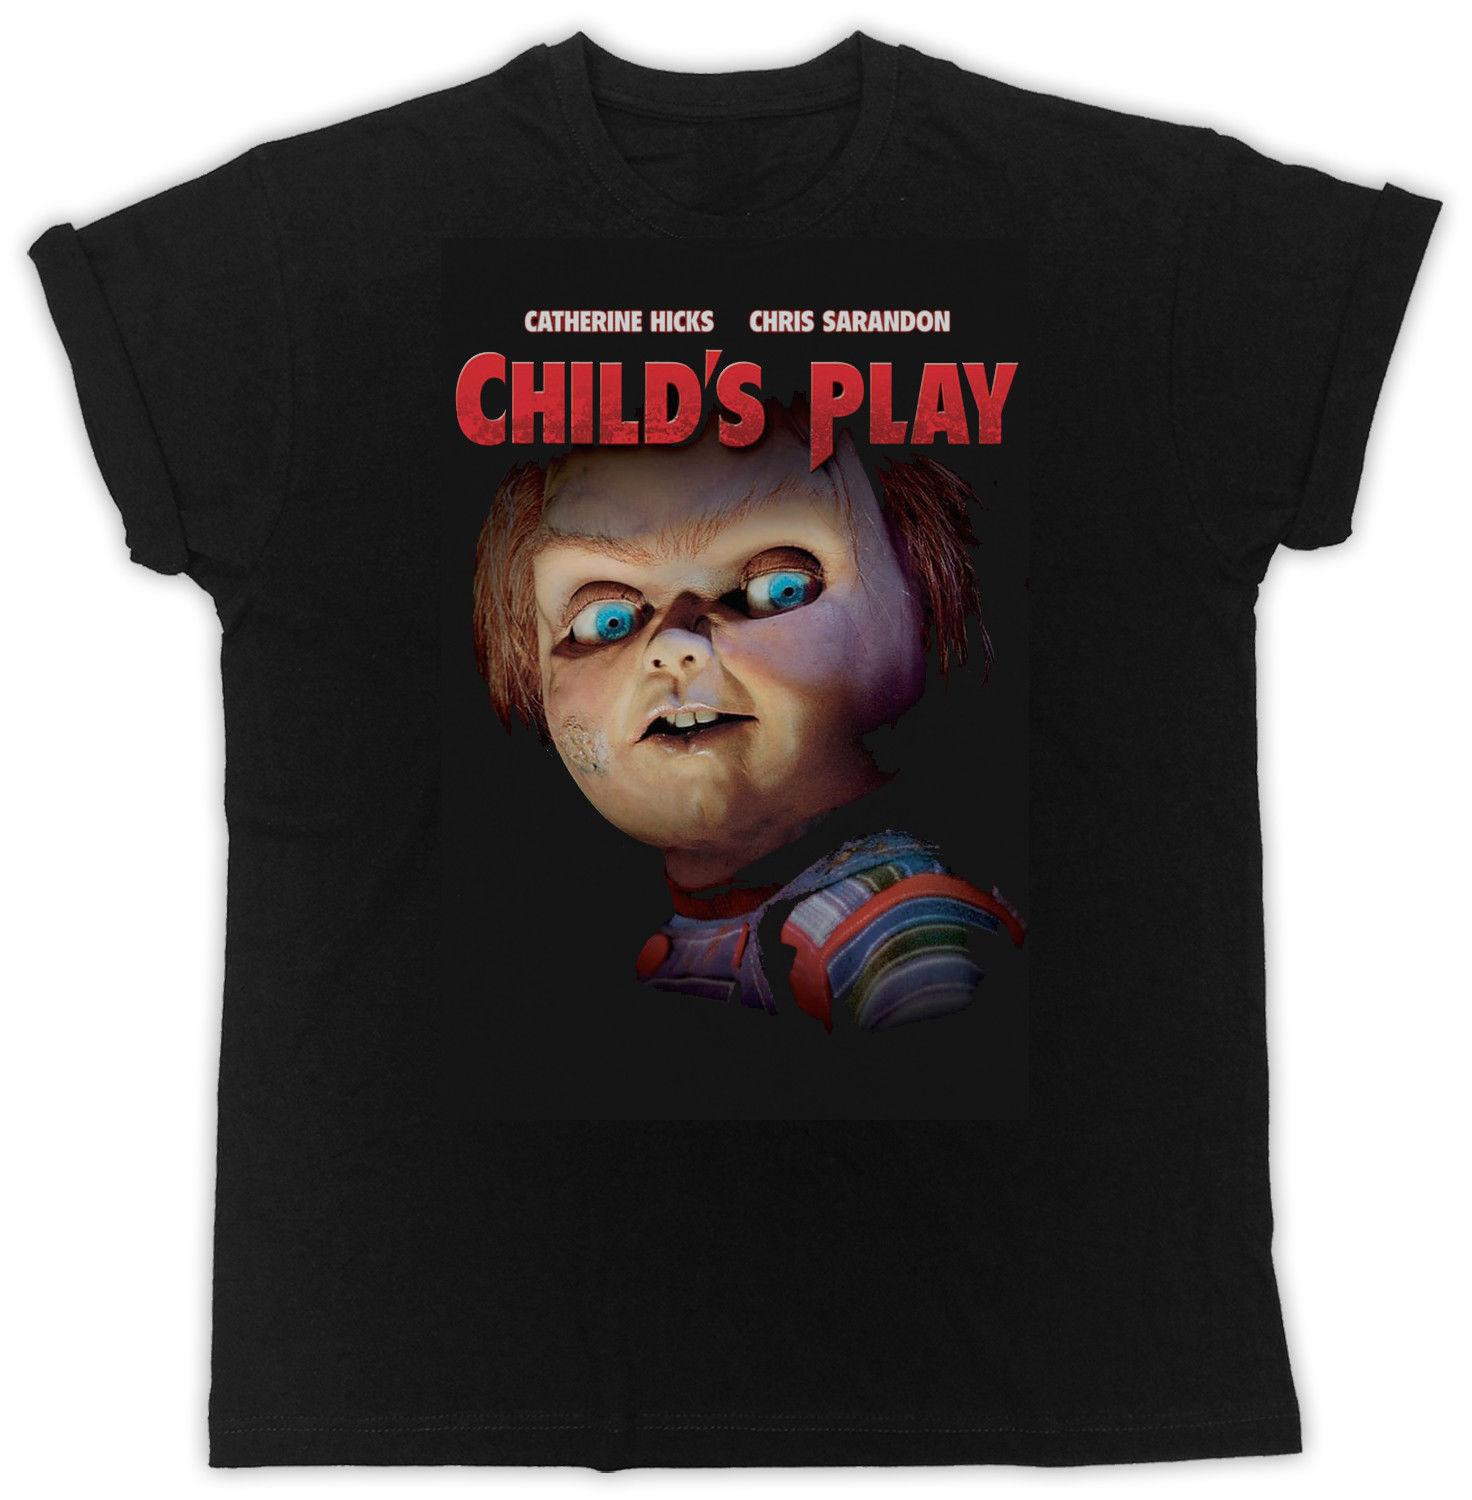 2f1dc6c8 COOL FUNNY CHILD'S PLAY MOVIE POSTER TSHIRT UNISEX BLACK MENS T SHIRT  Awesome Shirts Cool T Shirts For Men From Excellent82, $11.48| DHgate.Com